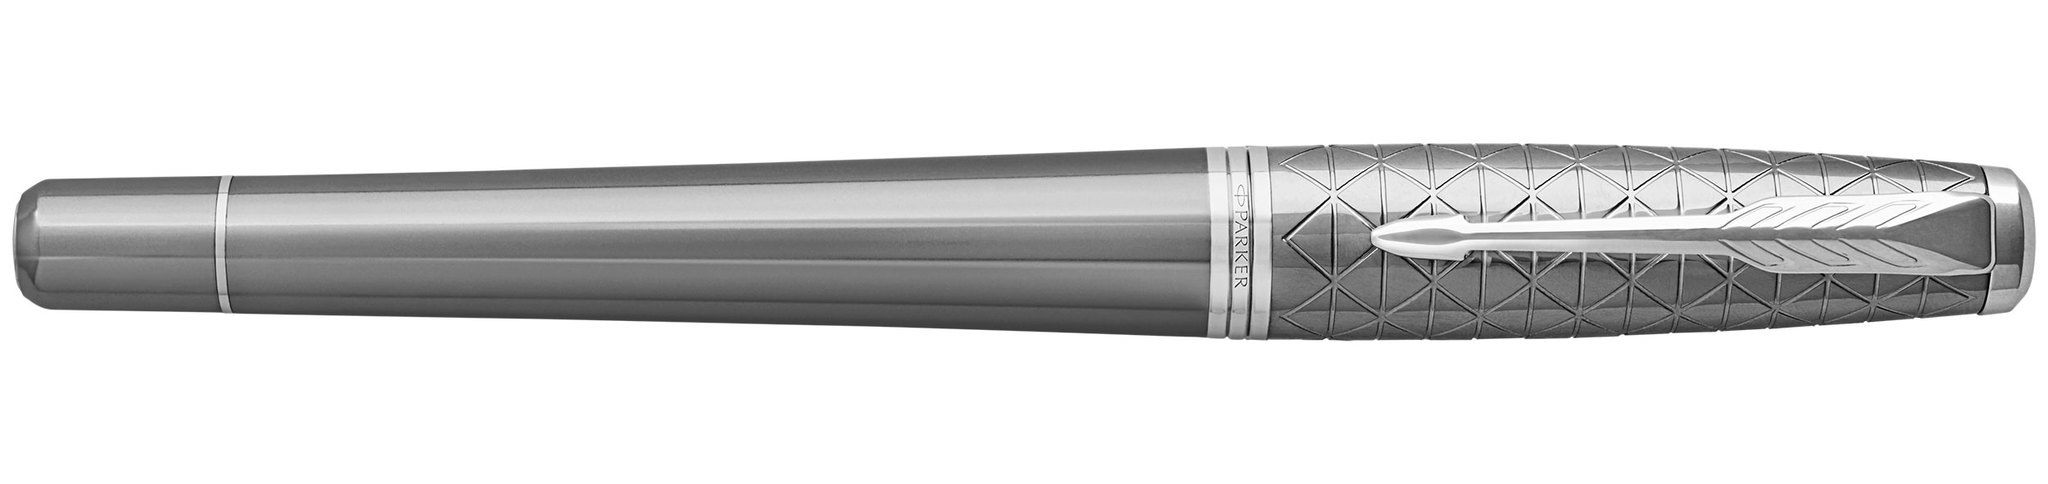 Parker Urban Premium -Silvered Powder CT, ручка-роллер, F, BL